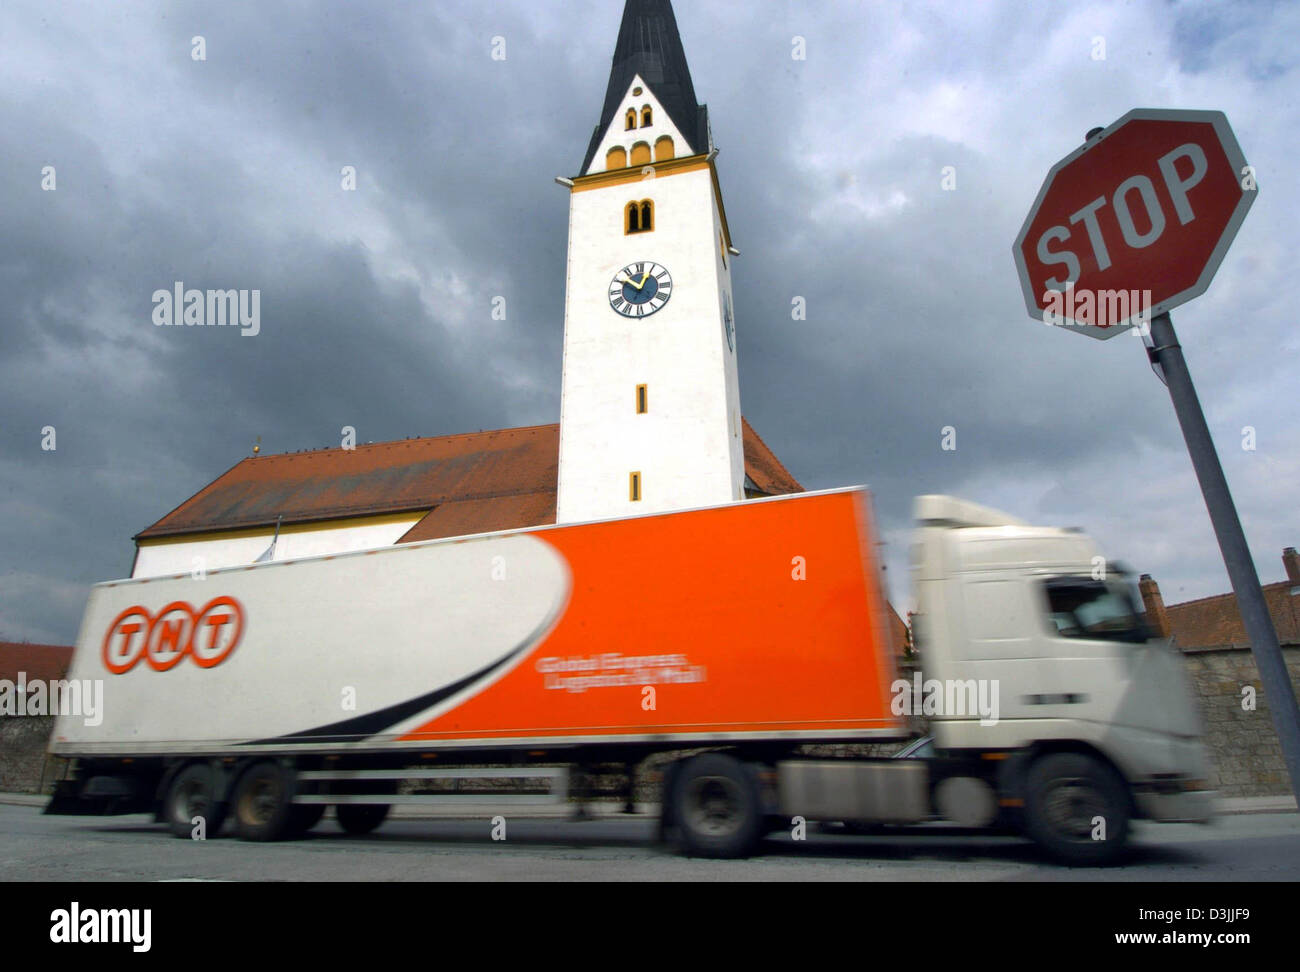 (dpa) - A large lorry drives along the through road through the town of Strasskirchen, Germany 11 April 2005. German Stock Photo